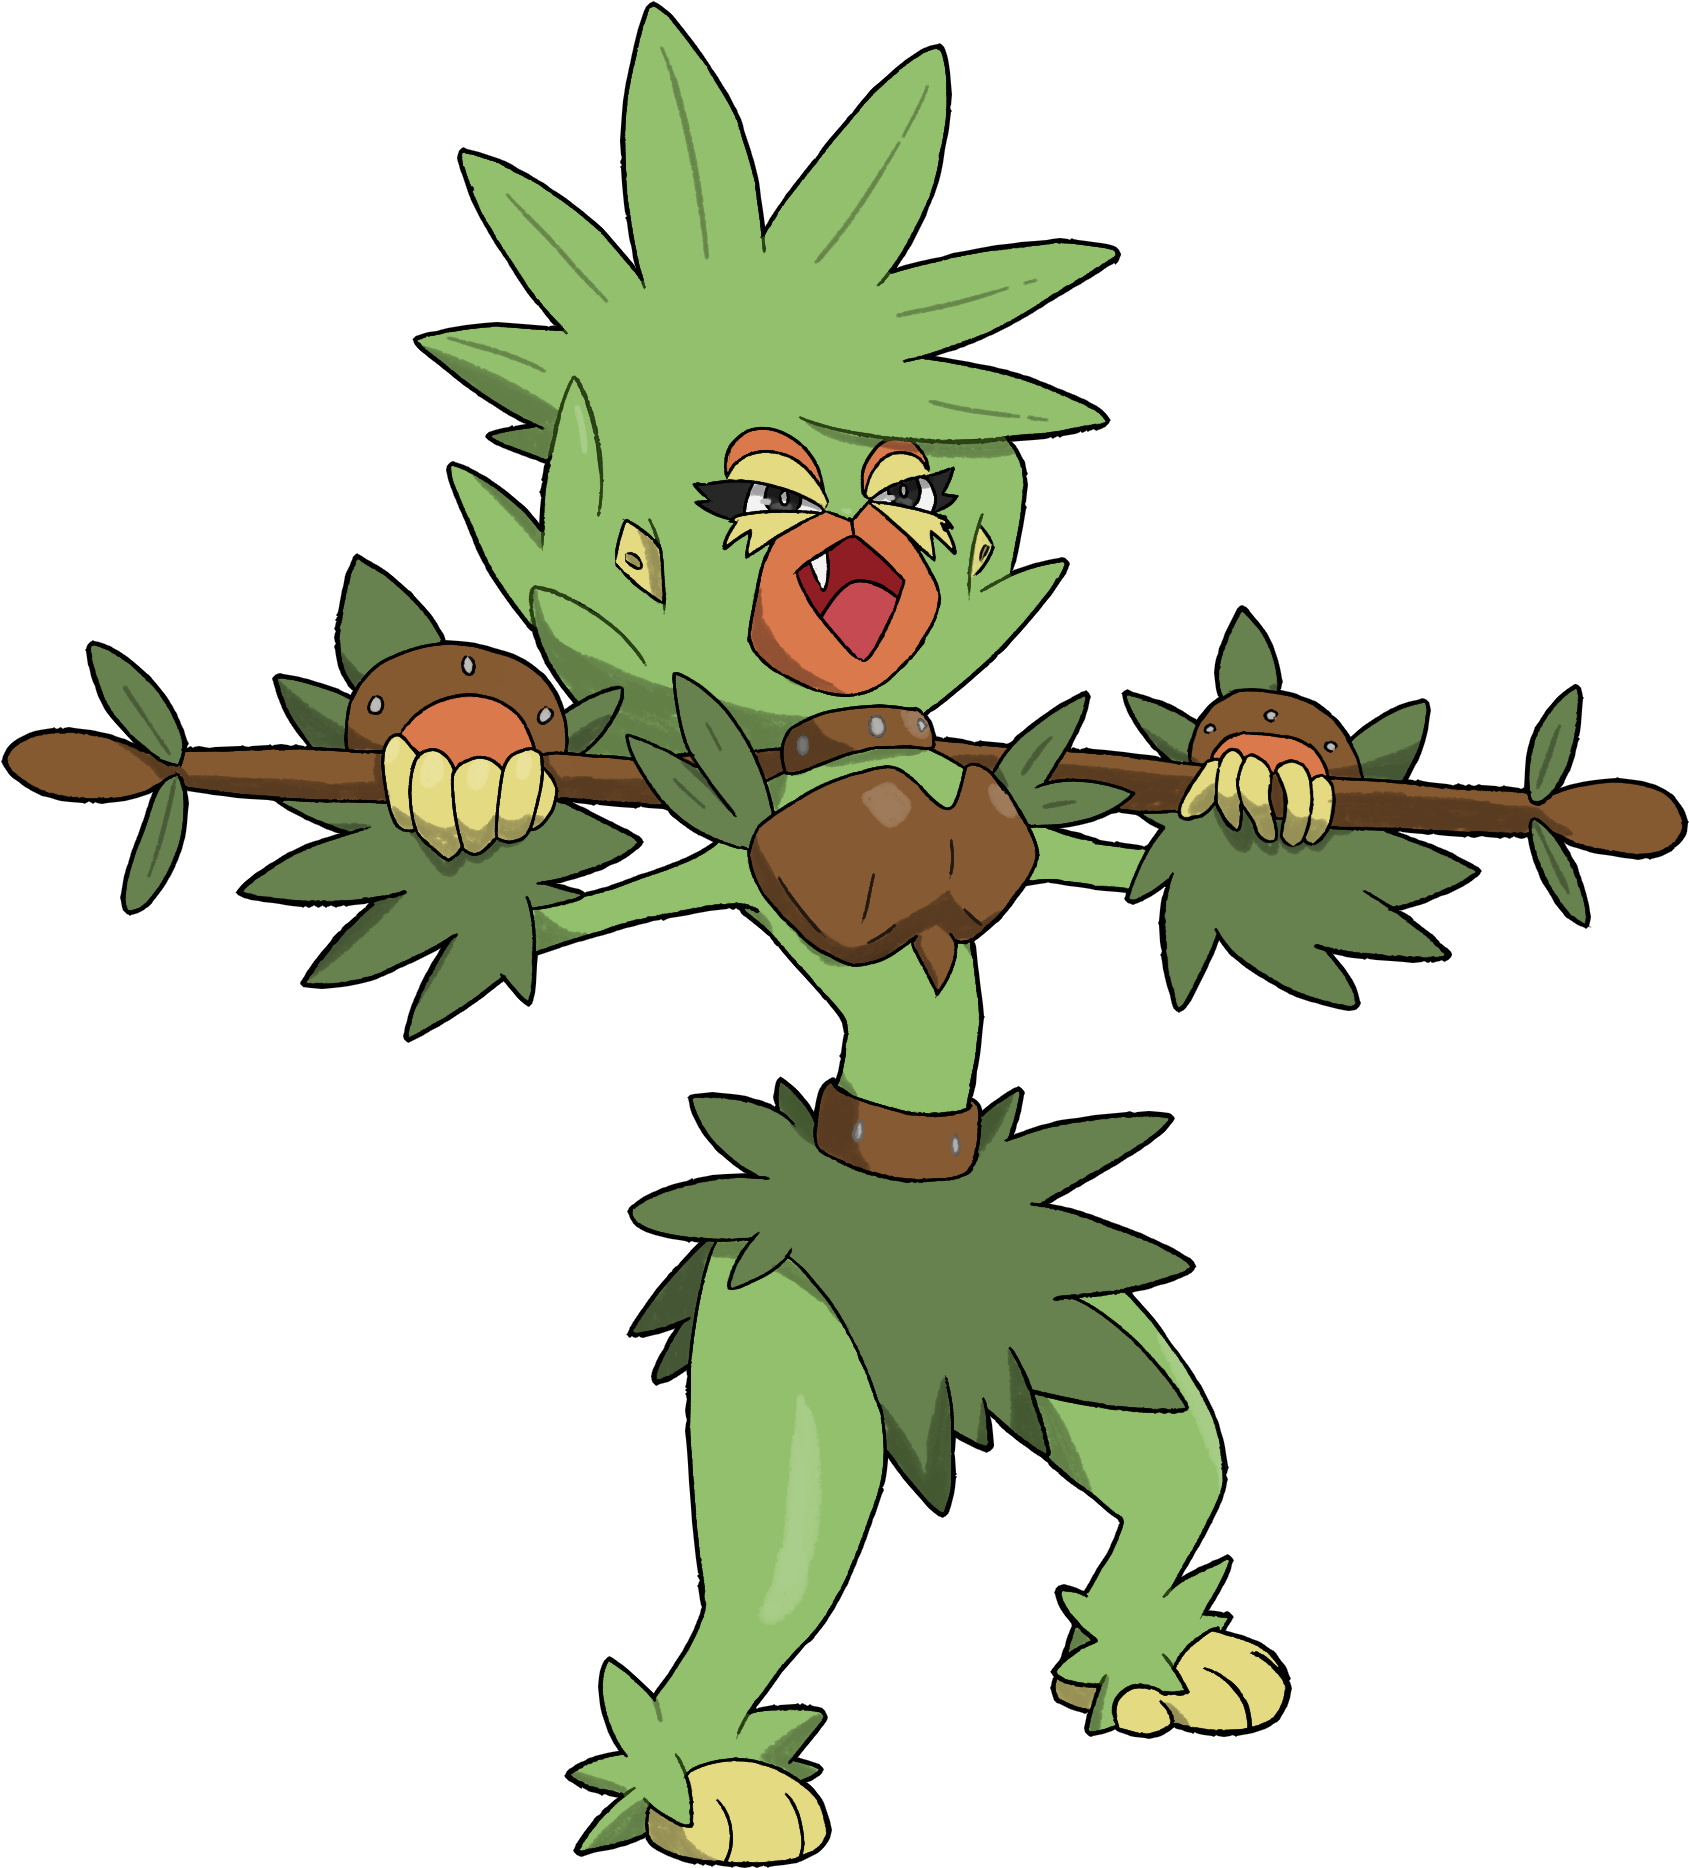 Grookey Gif Posted By Samantha Anderson Grookey, scorbunny, sobble meme by umbrellafrogg on deviantart. grookey gif posted by samantha anderson